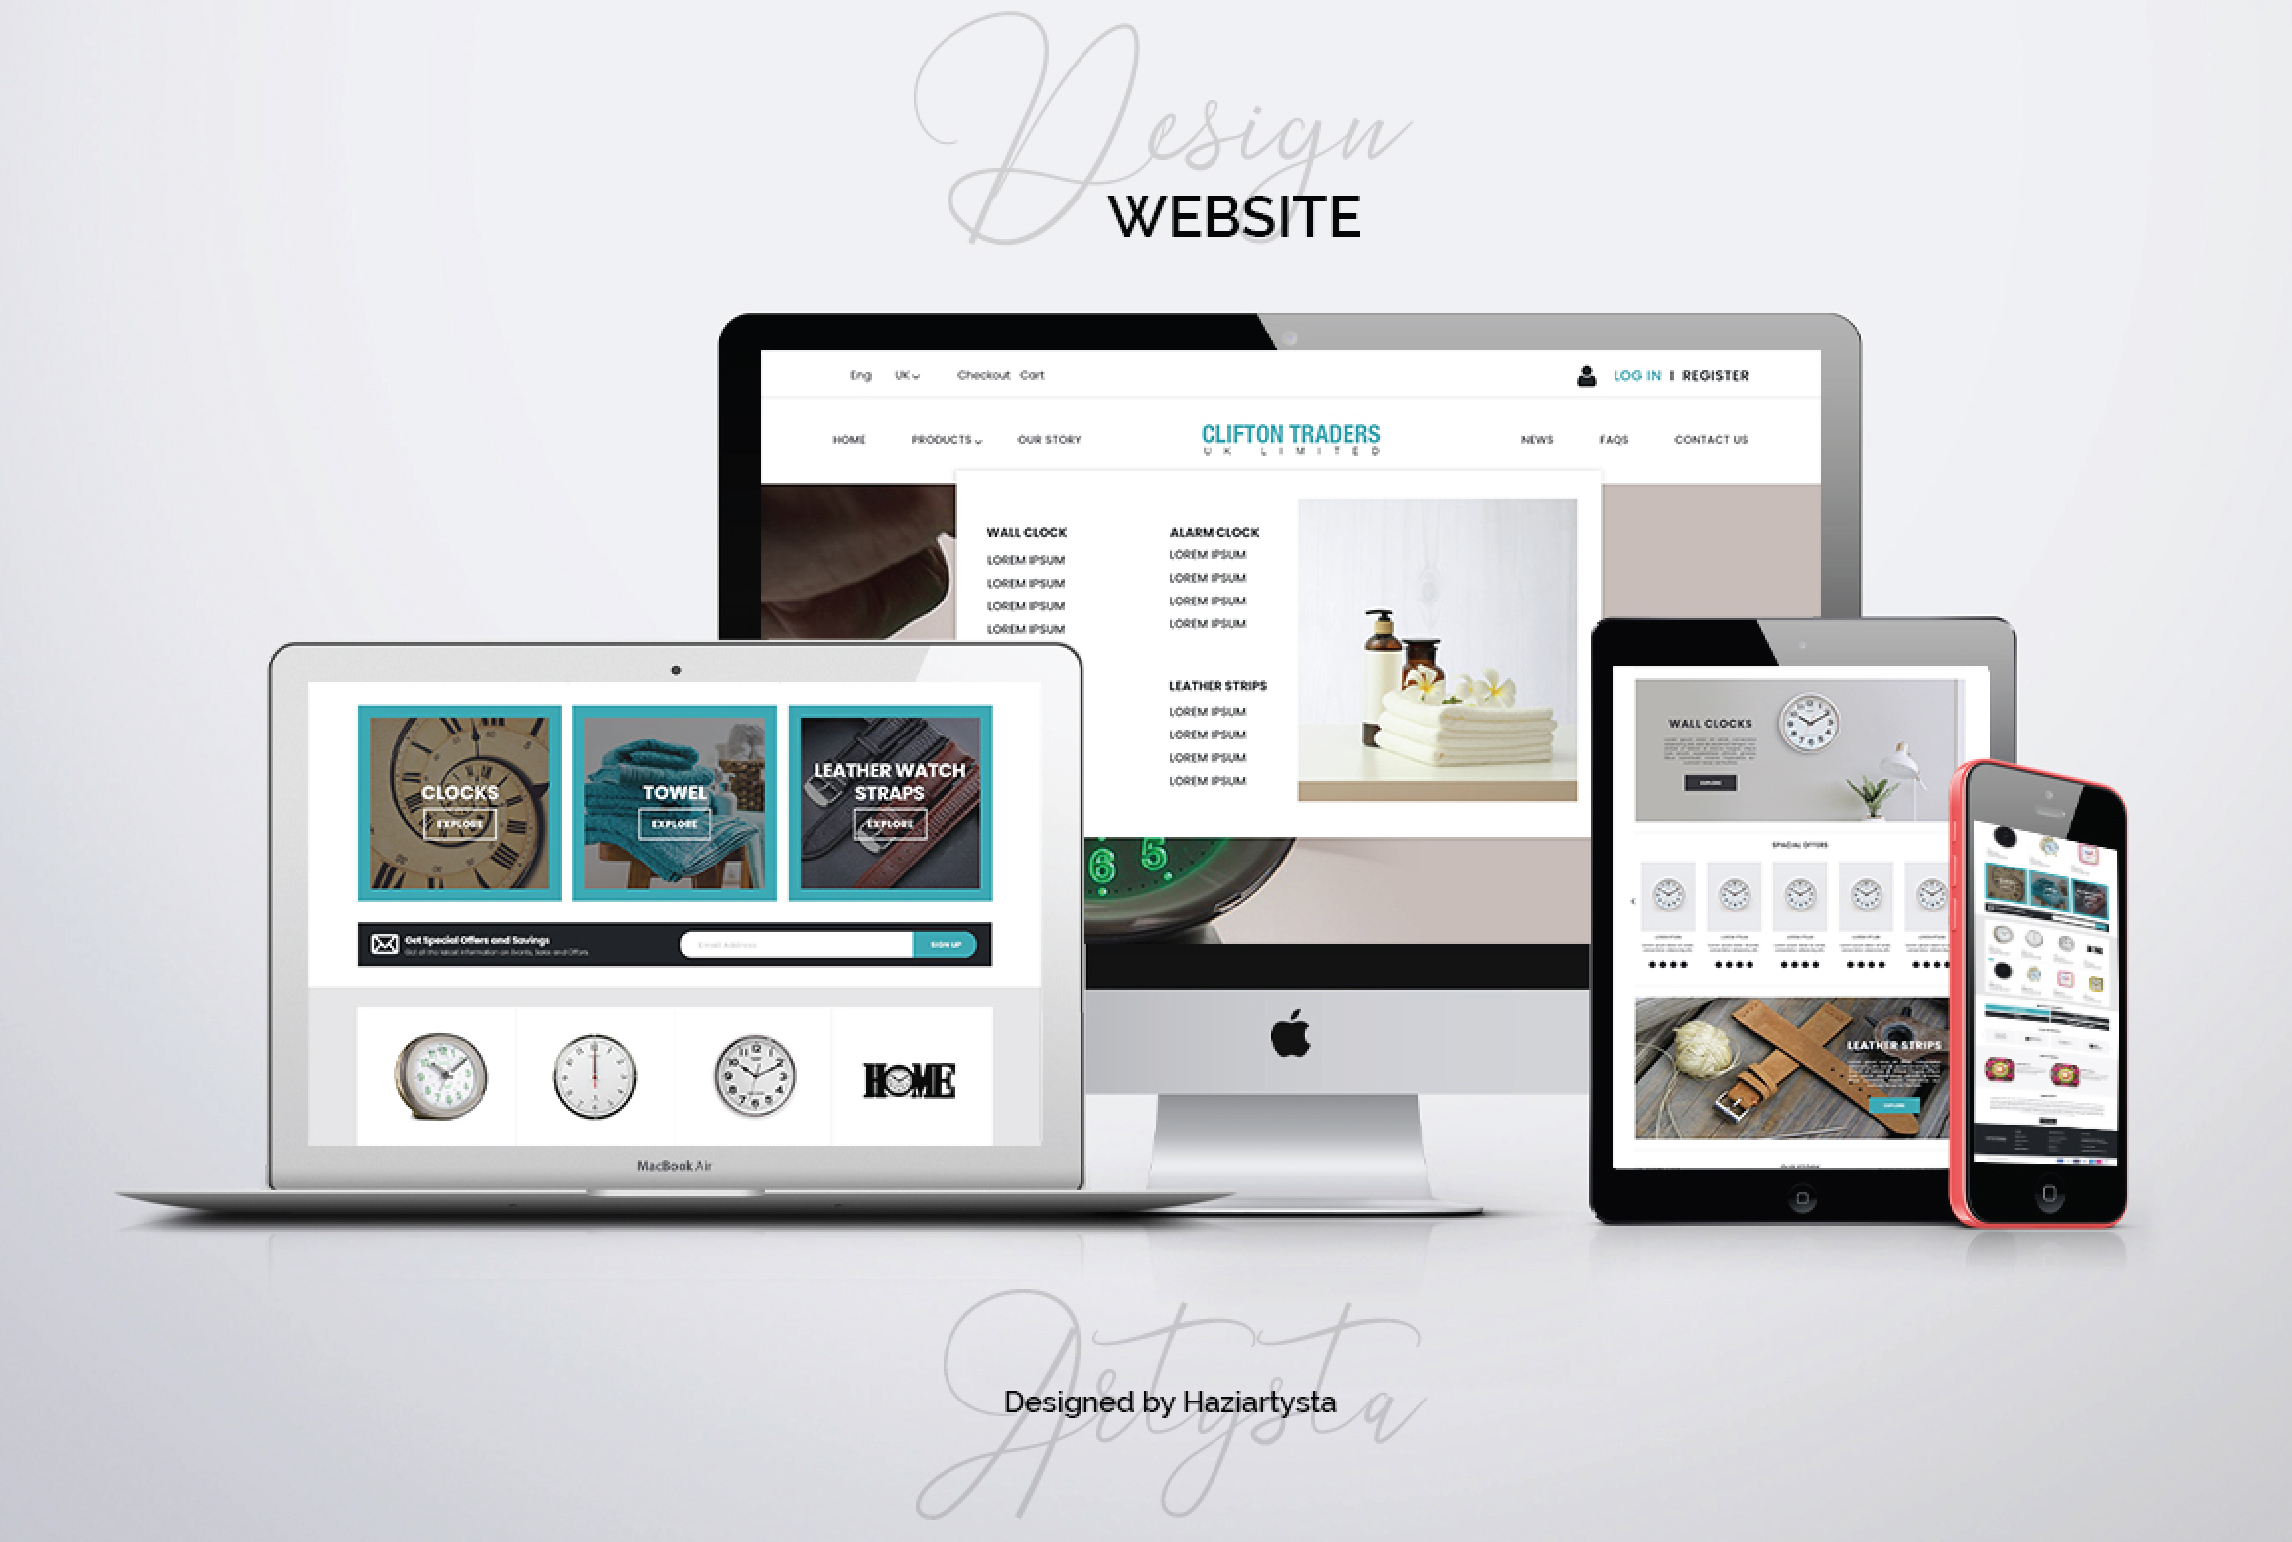 I will design unique landing page or home page for your website, FiverrBox